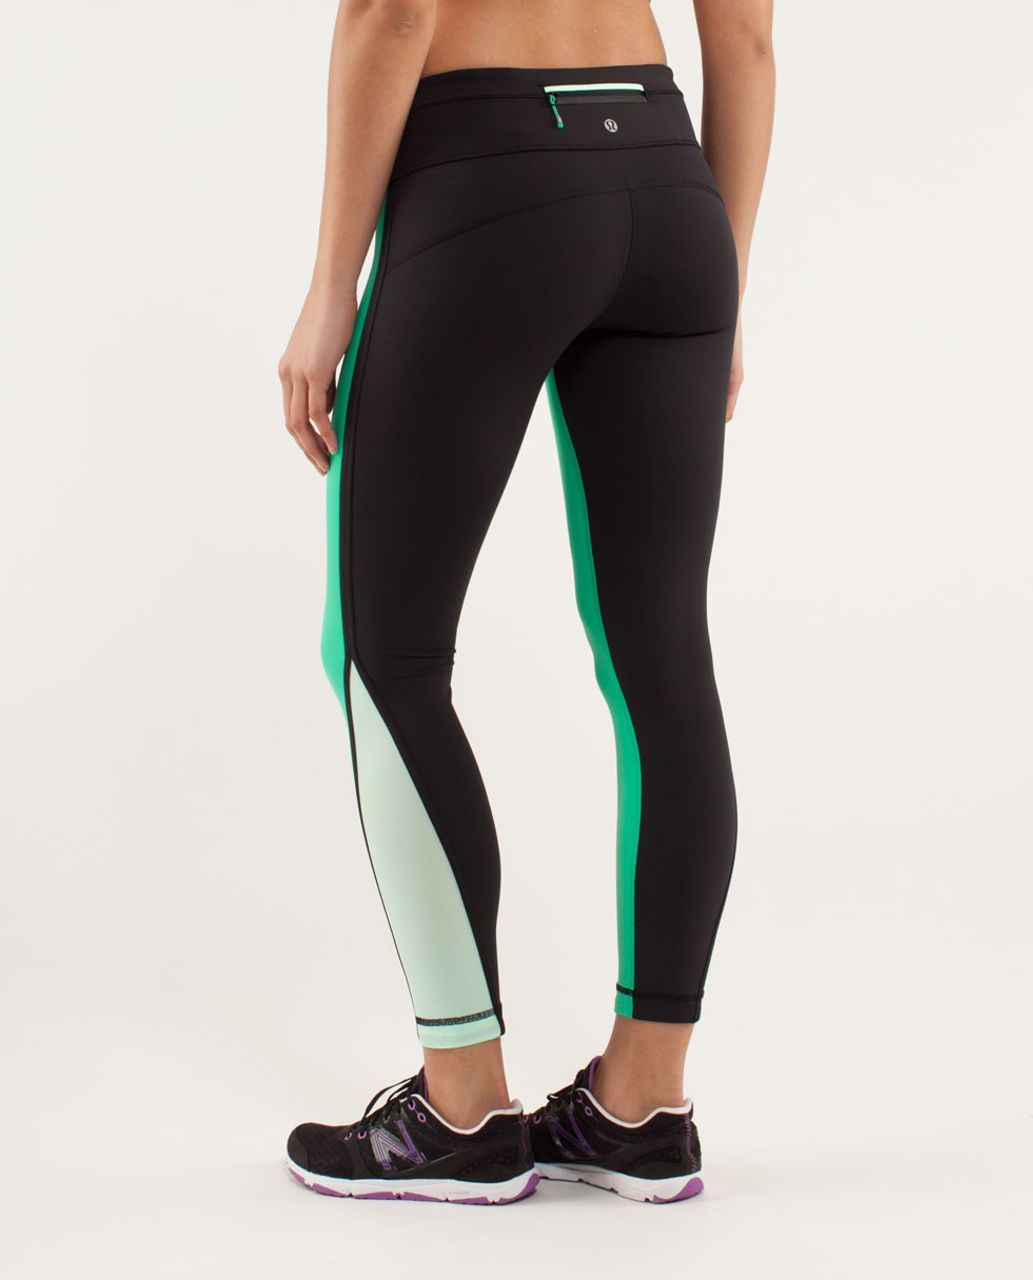 Lululemon Run:  Pace Tight - Very Green / Black / Fresh Teal